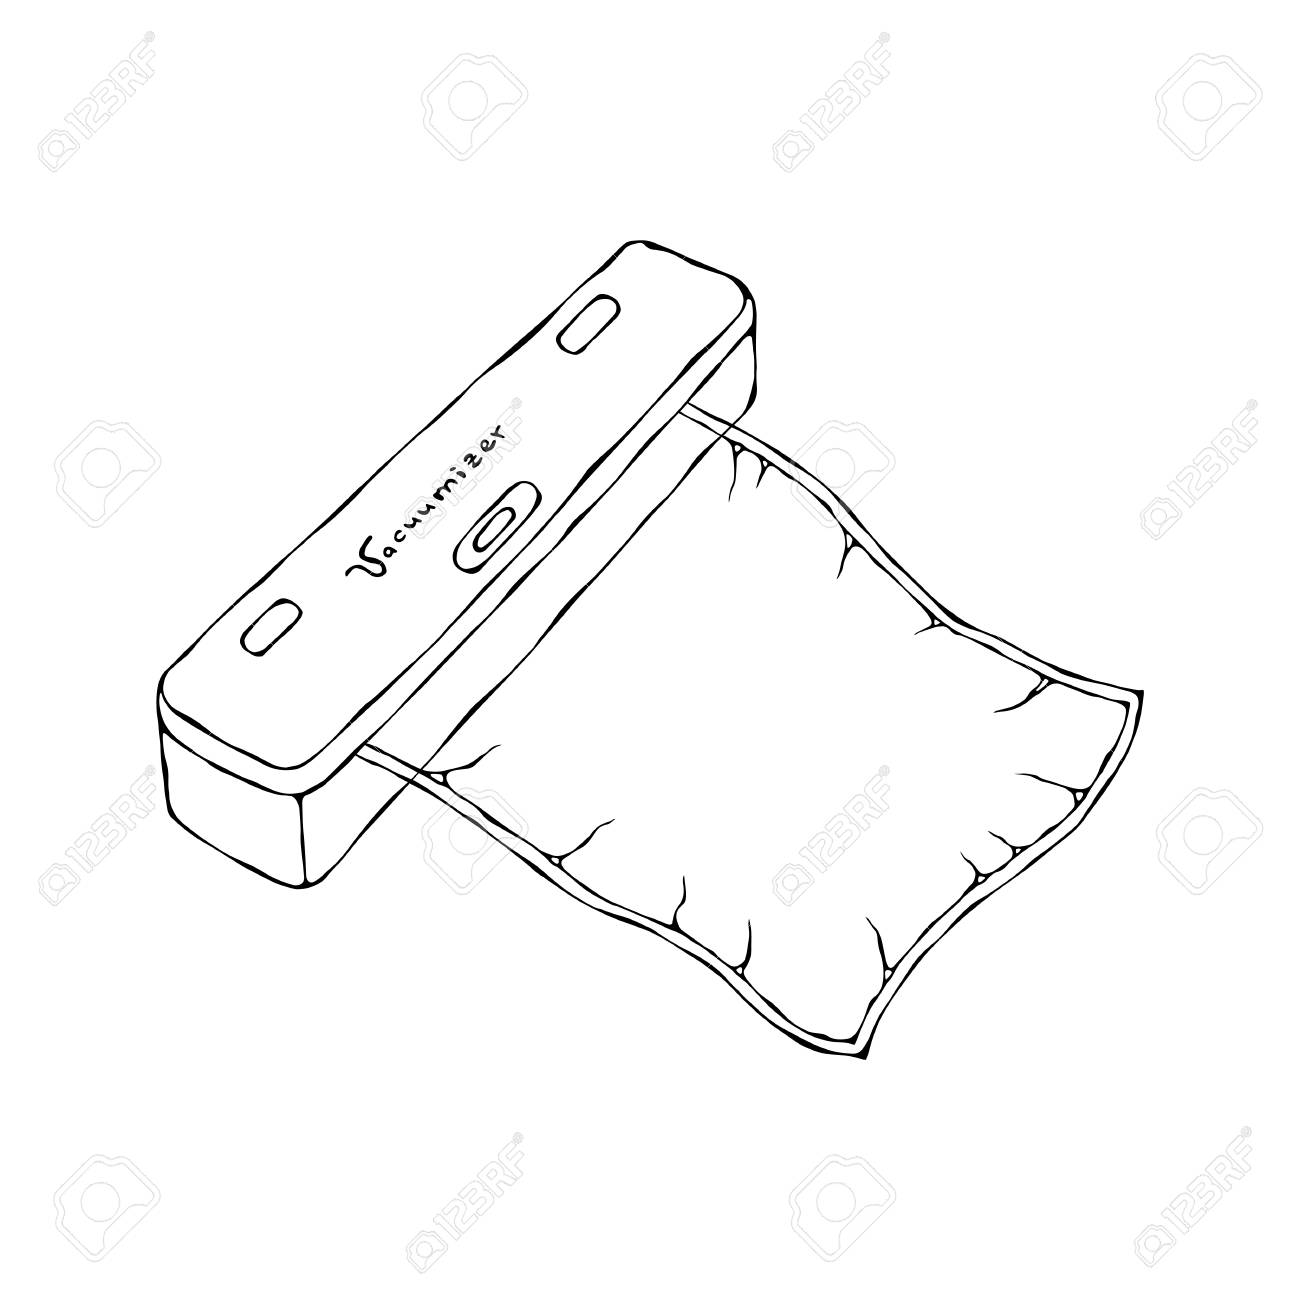 Vacuumizer Food Sealer with Vacuum Bag. What is Sous-Vide. Slow Cooking Technology. Perfect Food. Chief Cuisine Collection. EPS10 Vector. Hand Drawn Doodle Style Realistic Illustration - 126910594